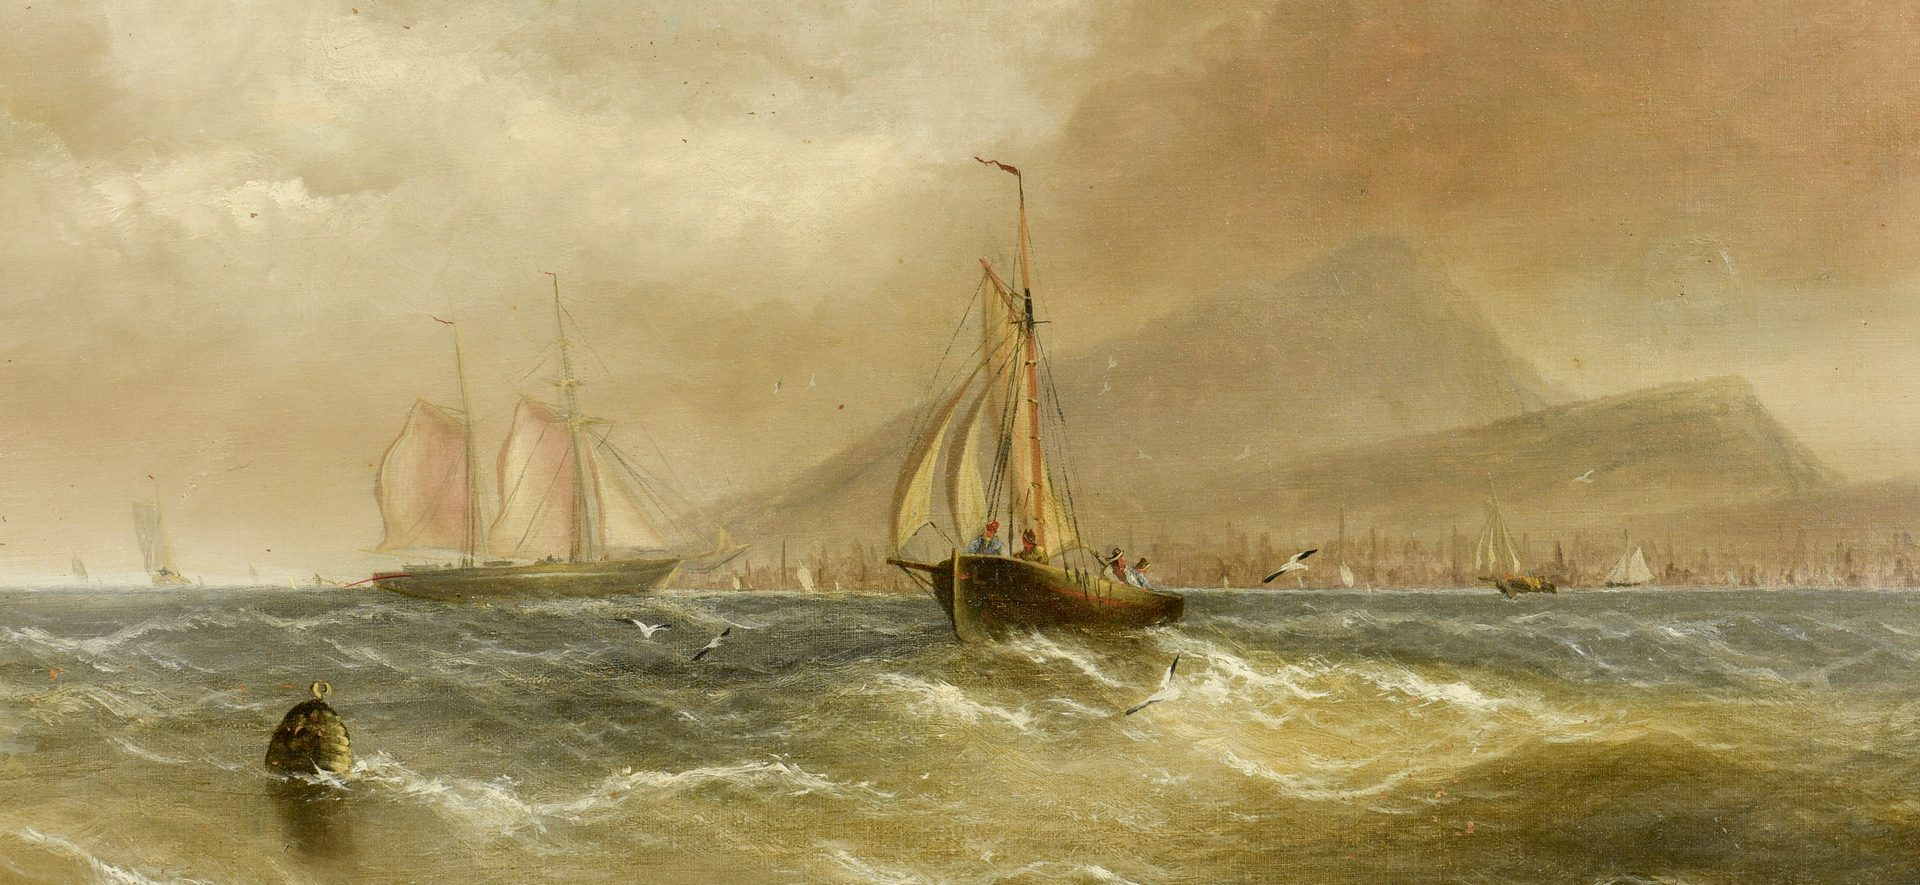 Lot 653: James. W Bartholomew Marine Painting